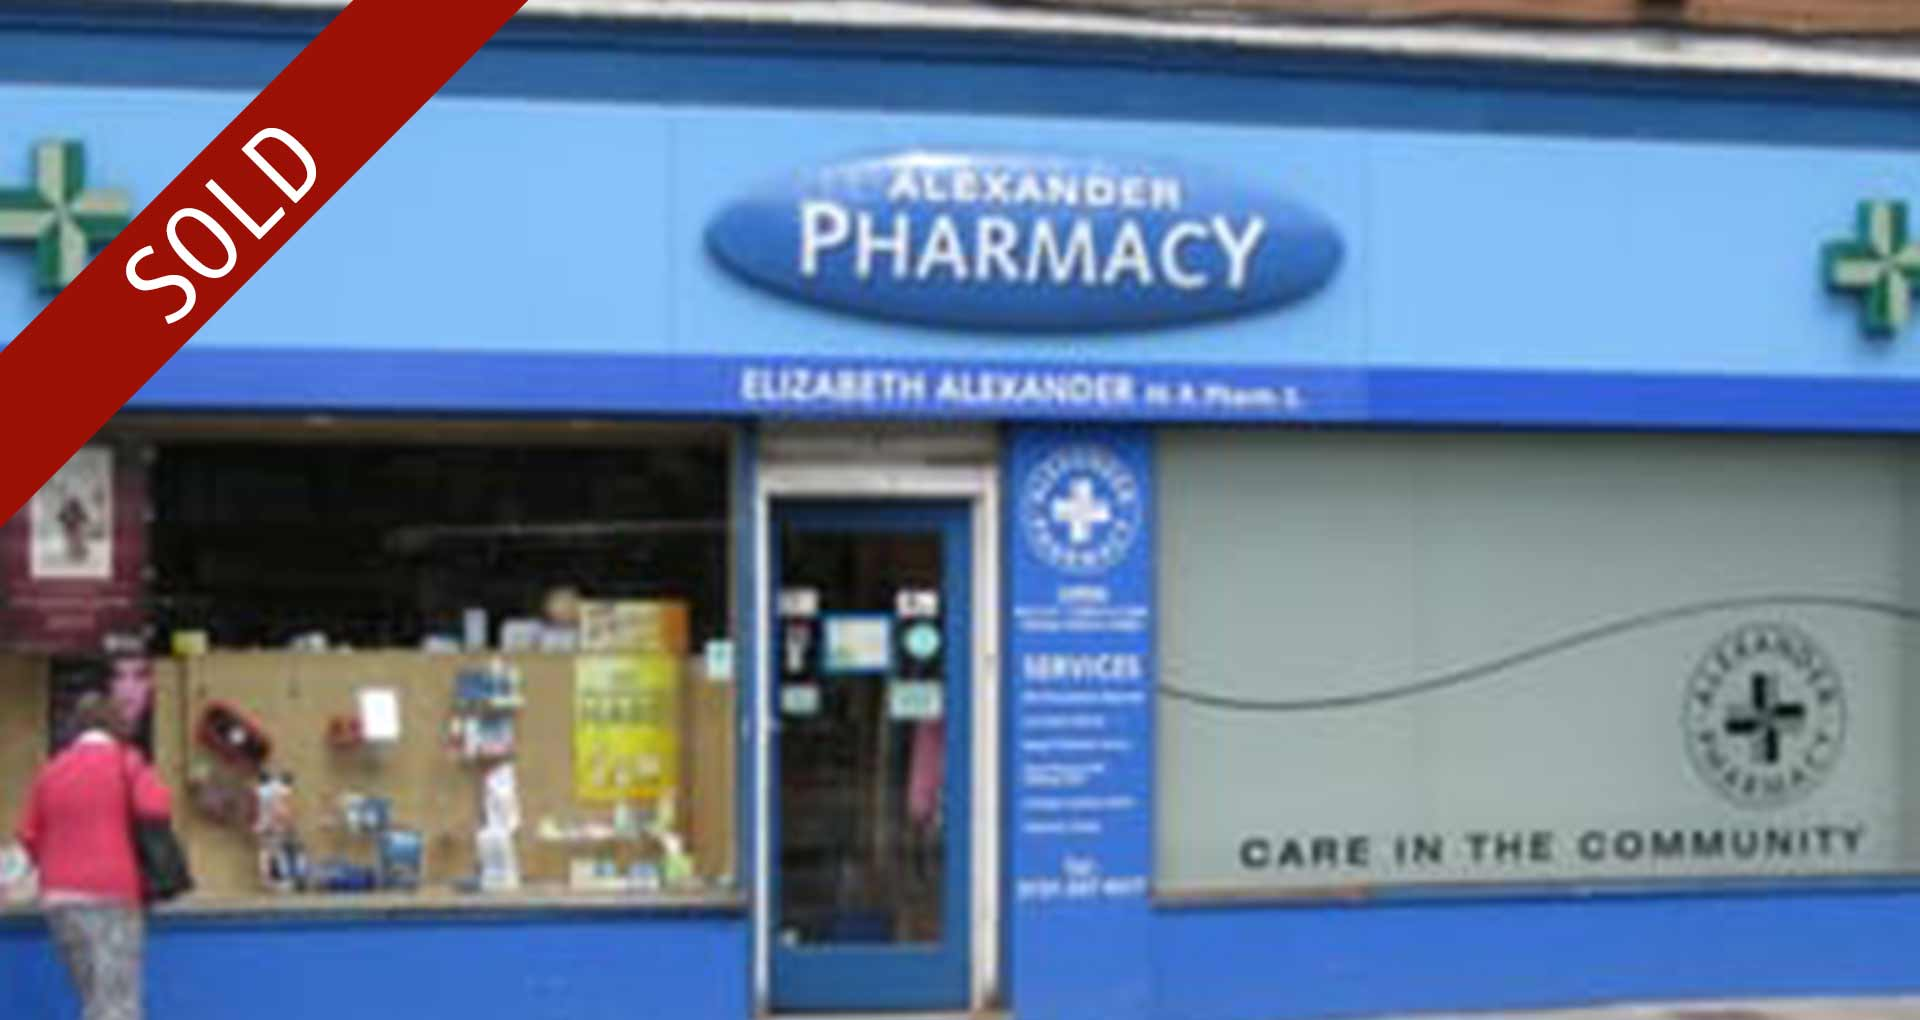 Alexander Pharmacy, Edinburgh